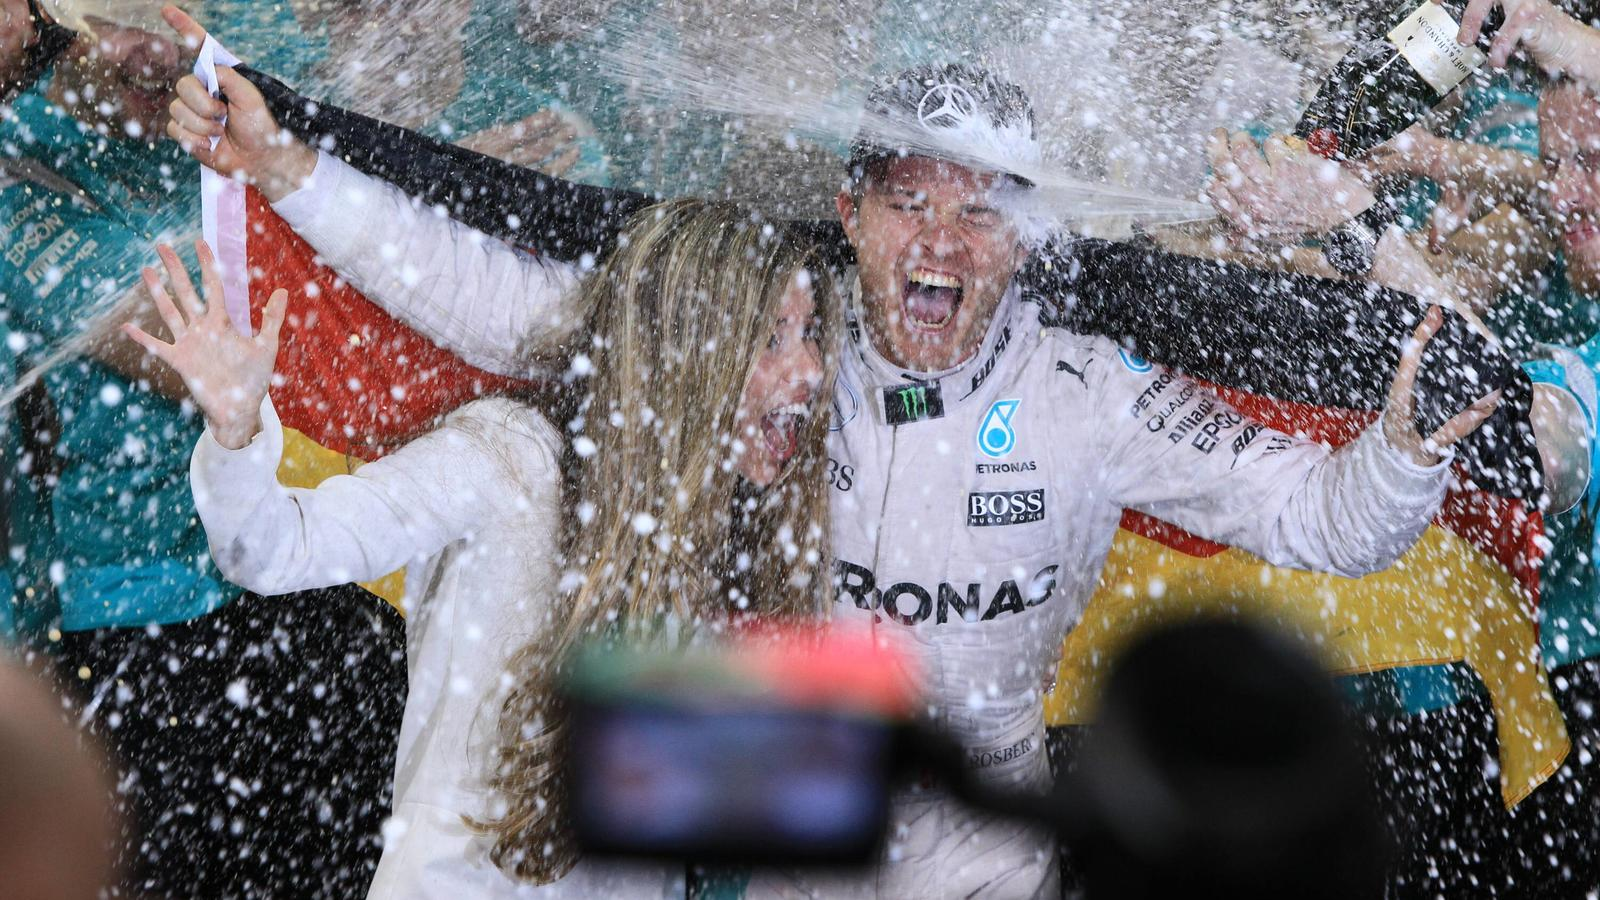 Formel 1, GP von Abu Dhabi, Nico Rosberg ist Weltmeister  27.11.2016. Abu Dhabi, UAE. Formula 1 Grand Prix Abu Dhabi, race day. Mercedes AMG Petronas - Nico Rosberg wins the driver world season championship seen with wife Vivian as the champagne flow